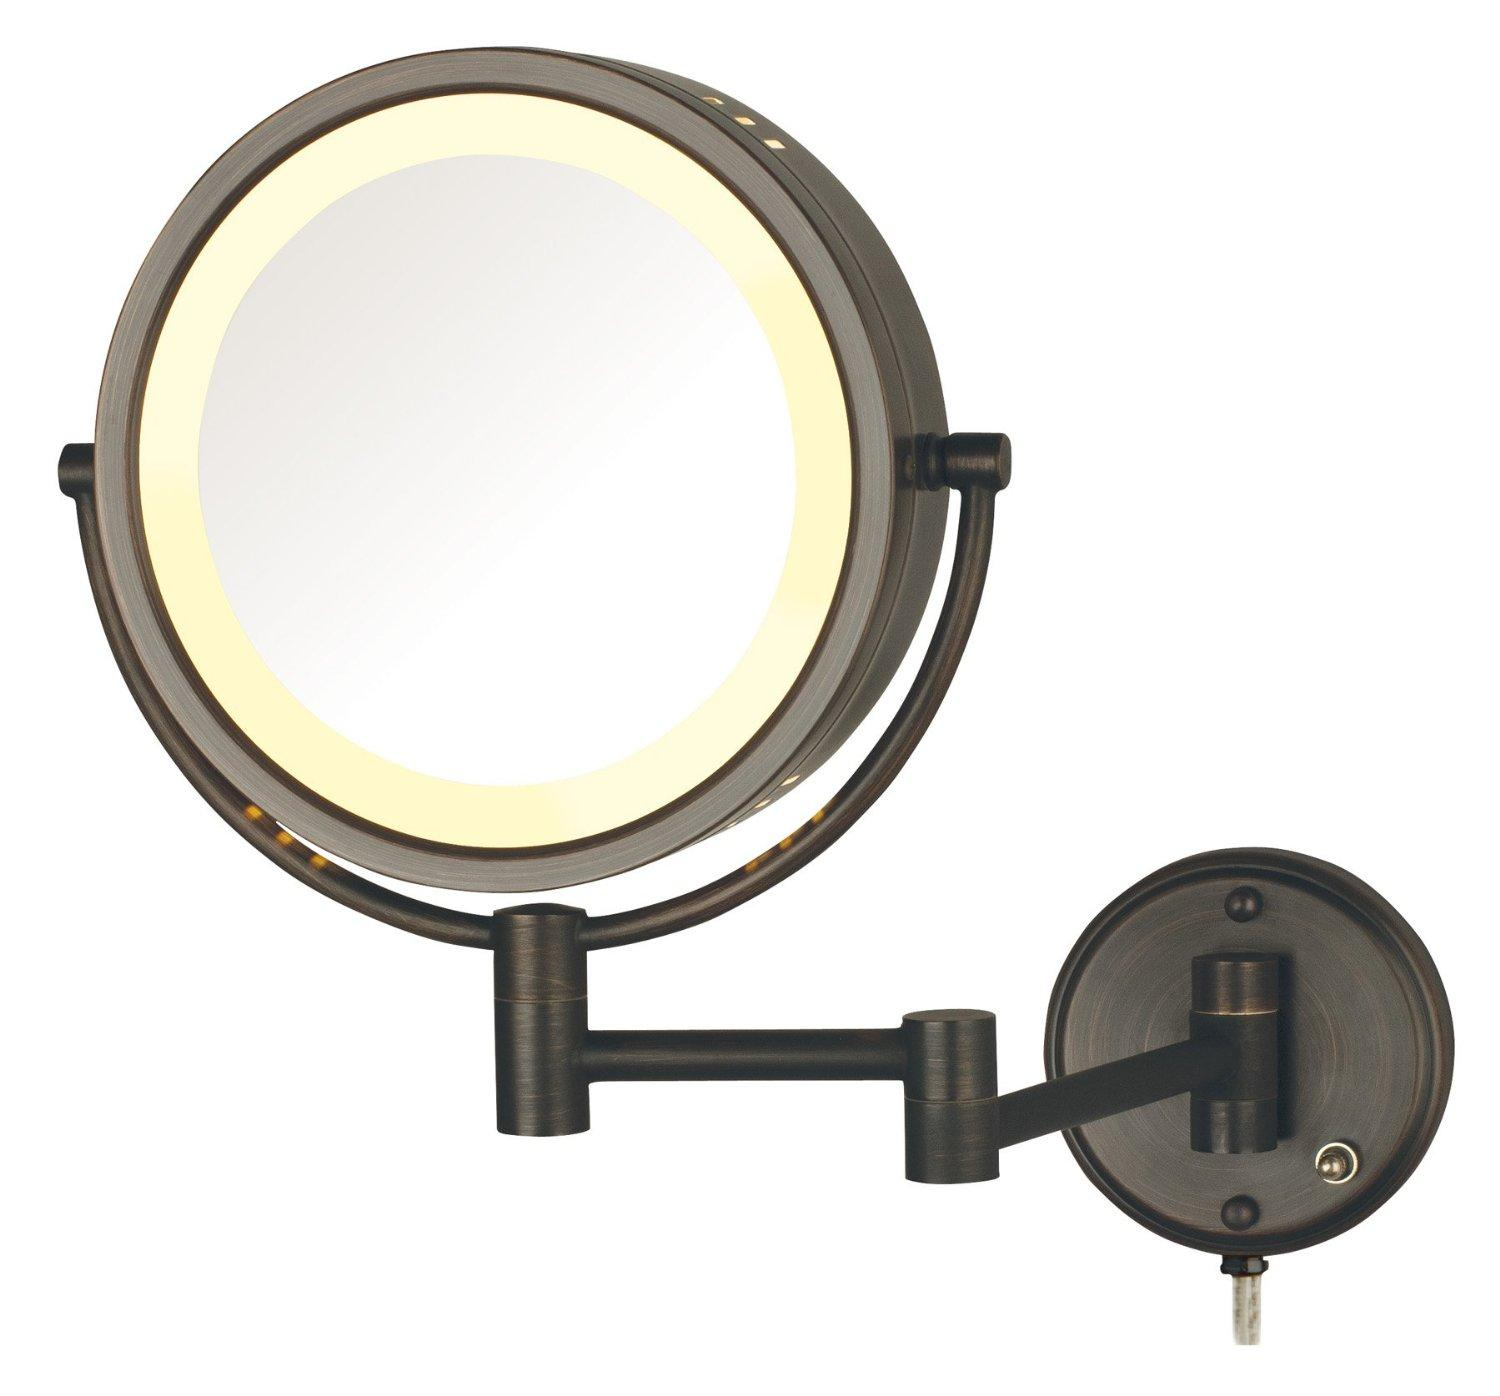 Amazoncom Jerdon Hl75bz 85 Inch Lighted Wall Mount Makeup Mirror